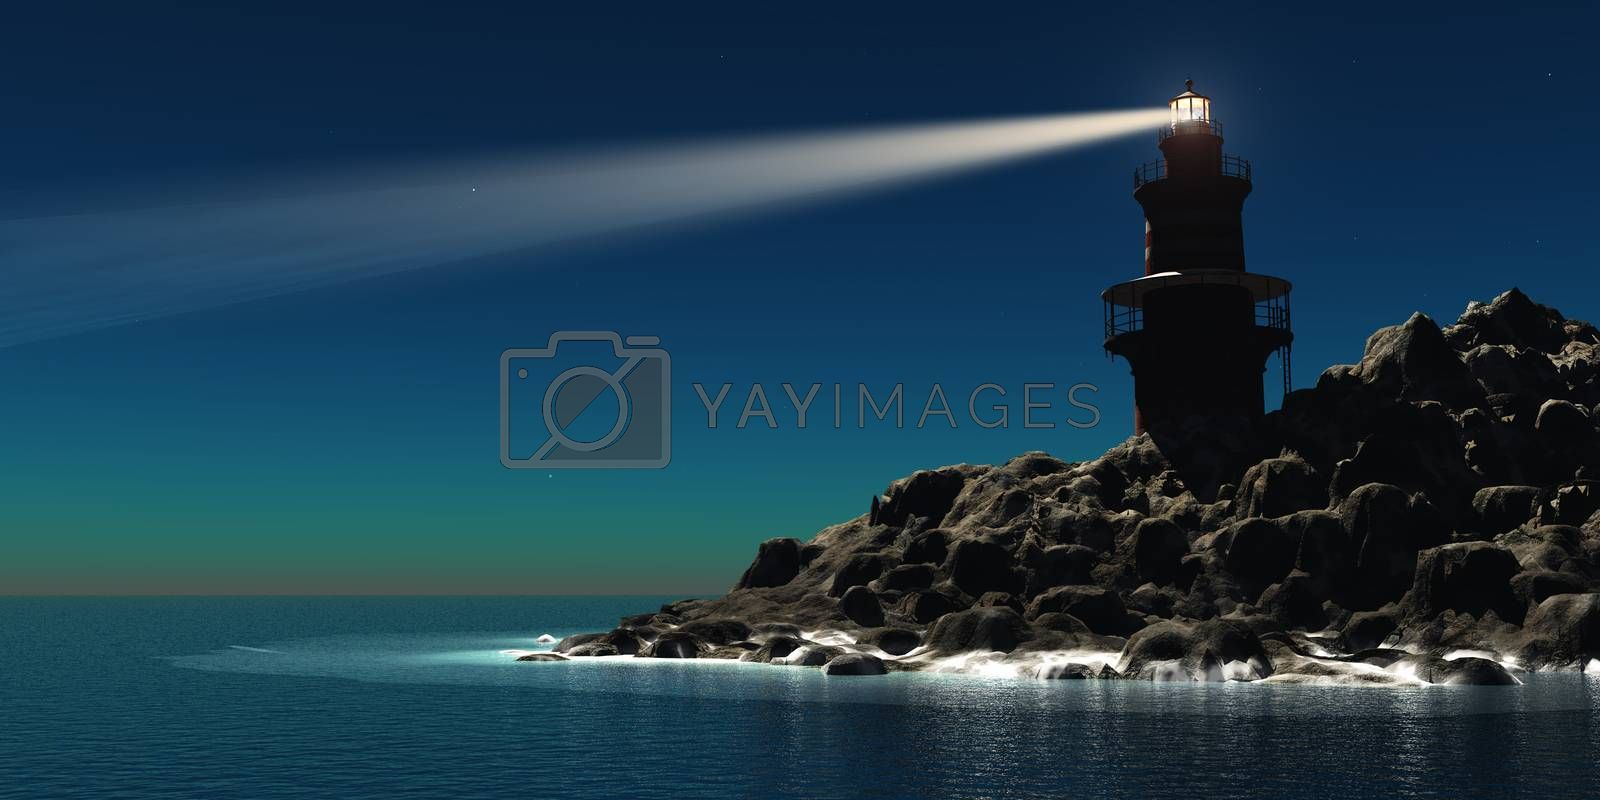 A red and white lighthouse guides sailors and boatmen away from the rocky shoreline.